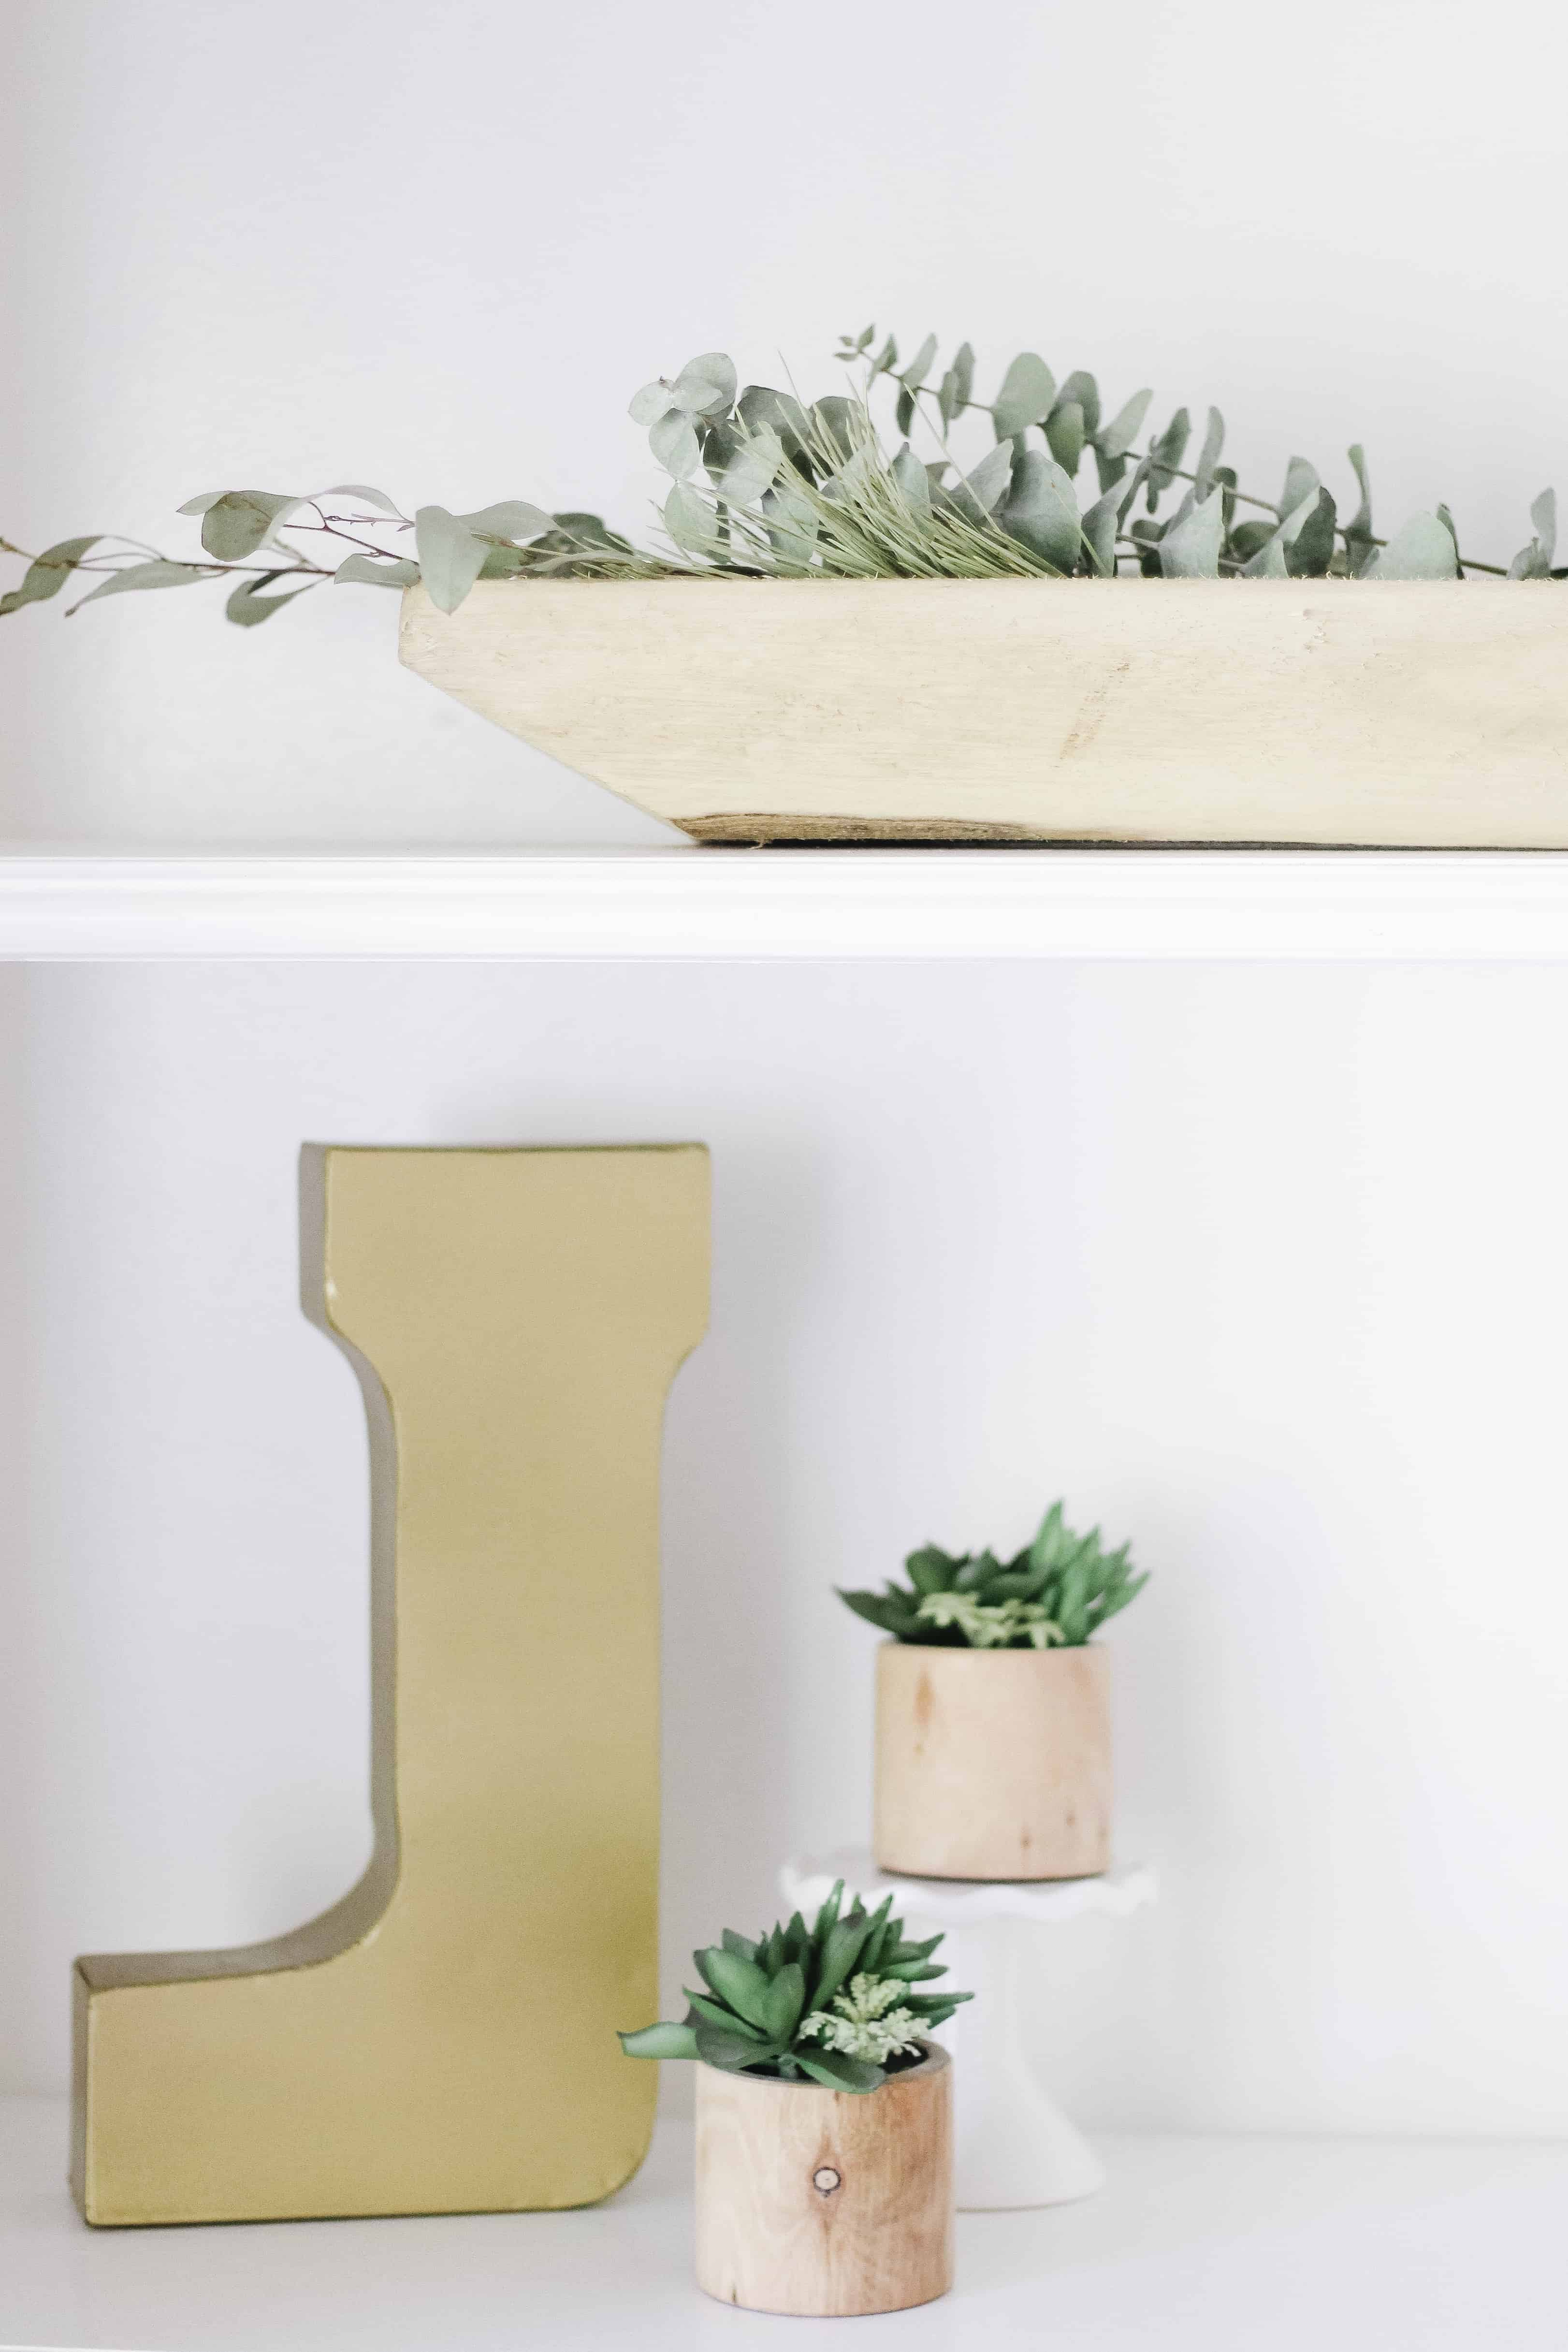 builtin shelving with gold J and wooden and greenery accents